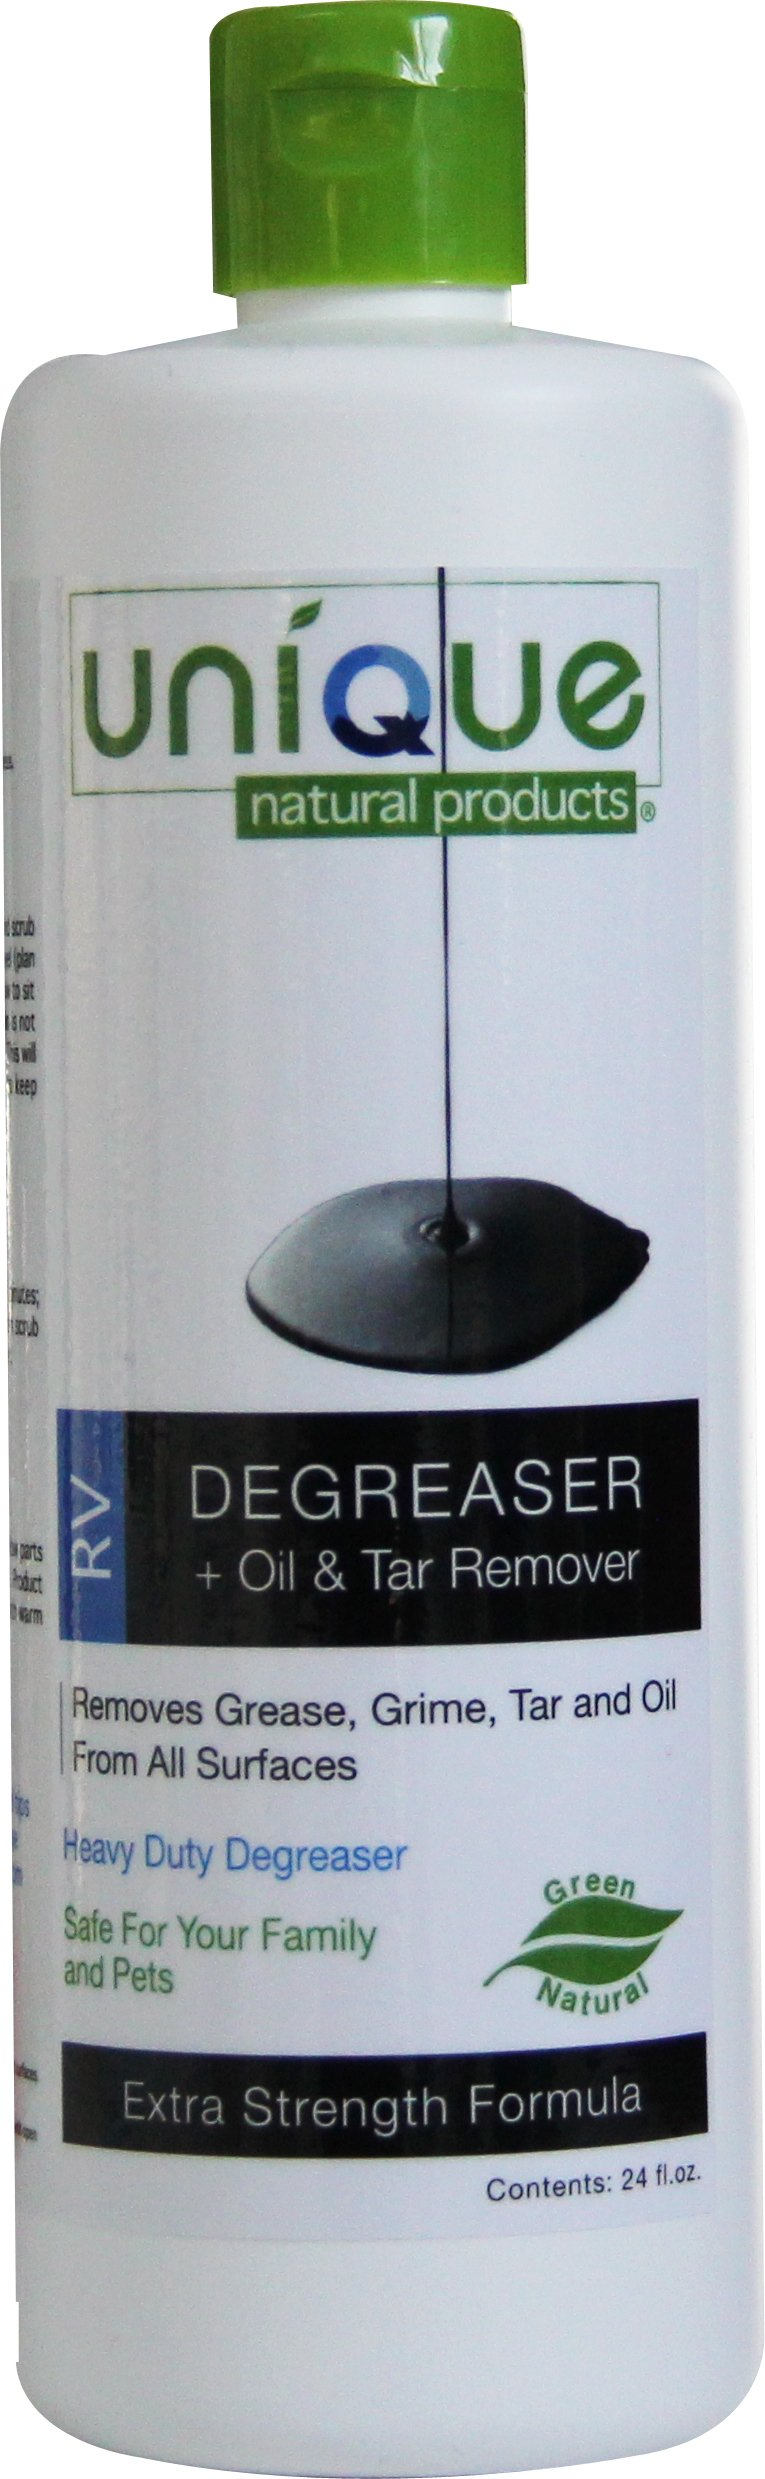 Unique Natural Products RV Degreaser, 24-Ounce